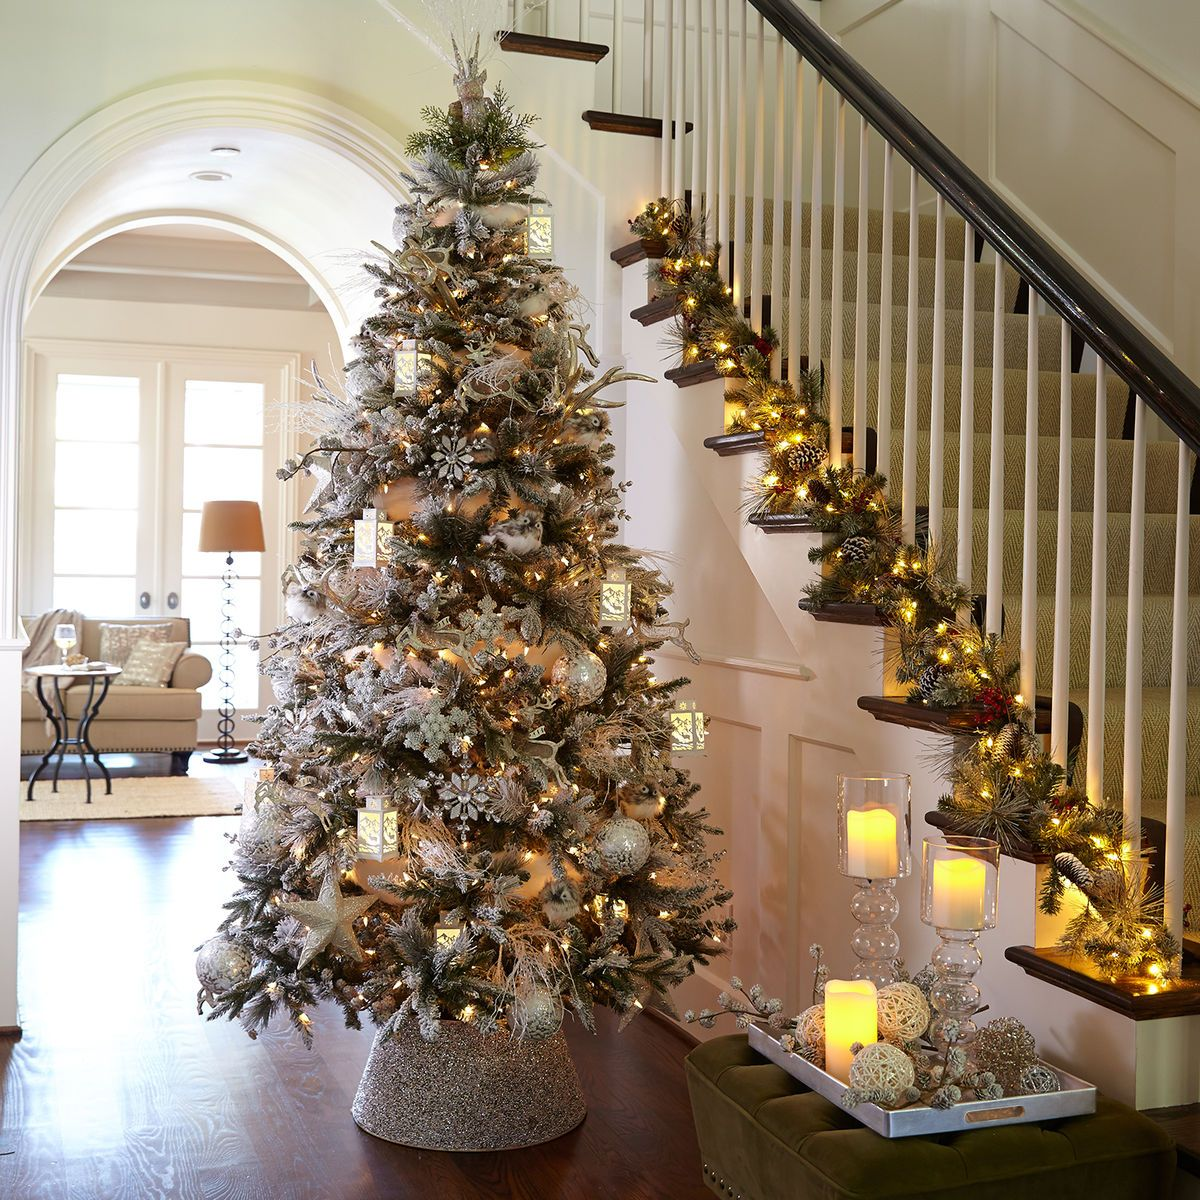 Pier One Christmas.Champagne Shimmer Christmas Tree 7 5 Pier 1 Imports